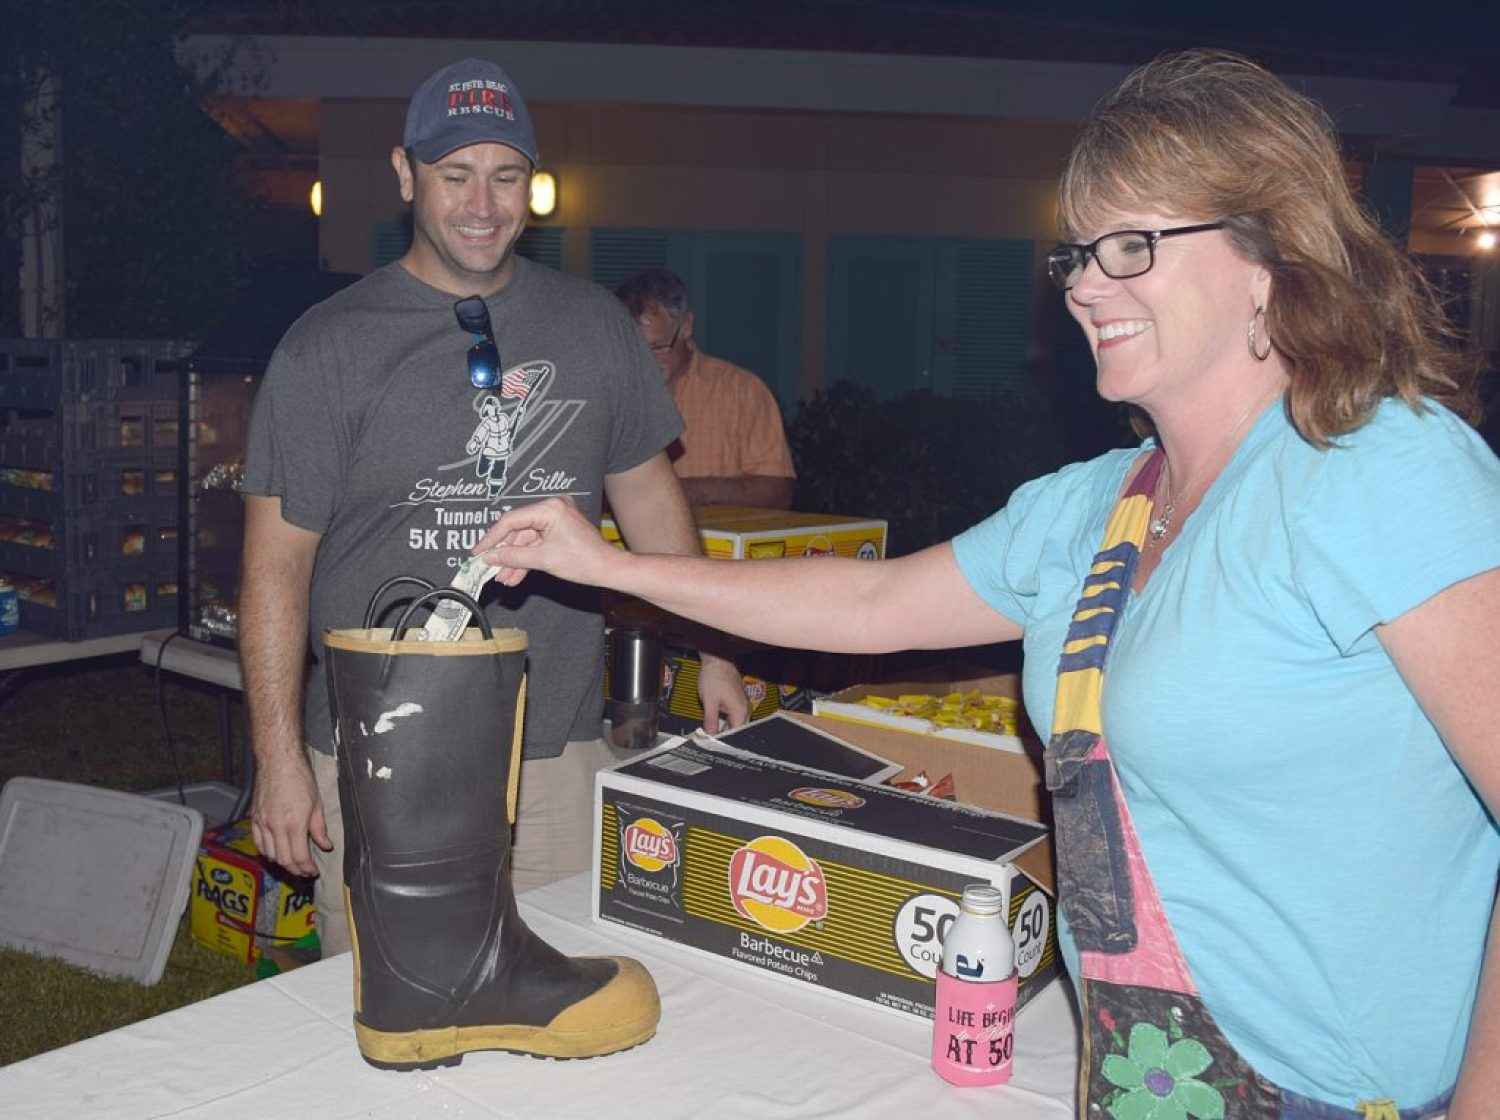 """Kelly Paradis of Largo drops some cash into a boot used to collect money at a fundraising food concession run by the St. Pete Beach Fire Department at Saturday's concert as her son, firefighter Jason Wing, looks on. """"We have been busy,"""" Wing said. """"We were a little concerned at first [because of the weather] but it turned out to be a good showing."""""""